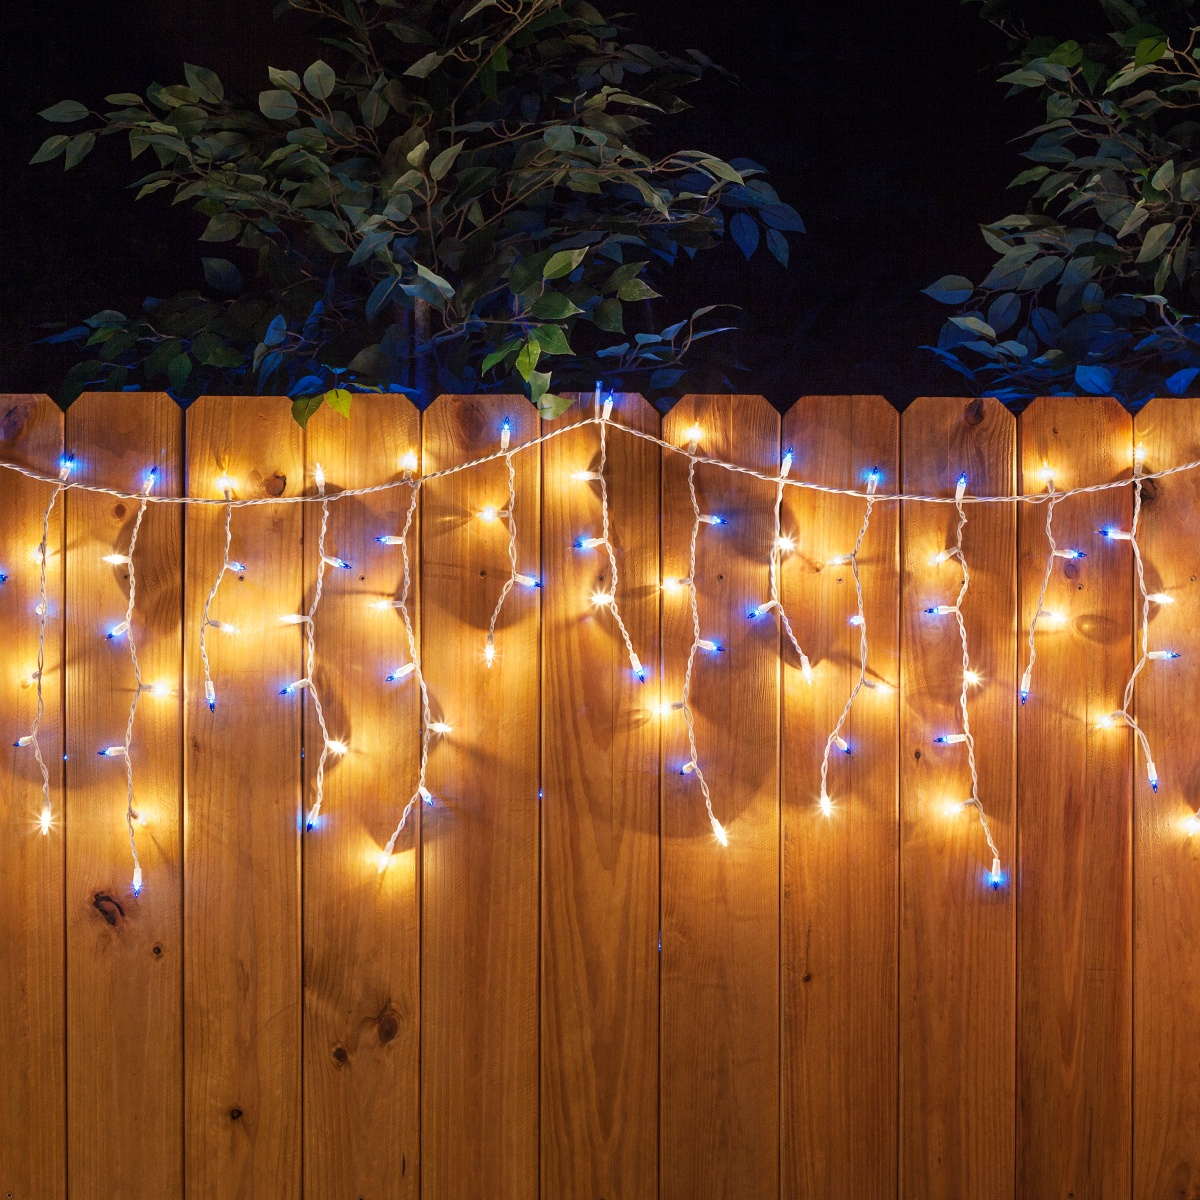 heavy duty steel small decorative indooroutdoor firewood.htm 150 icicle lights  blue clear  white wire yard envy  icicle lights  blue clear  white wire